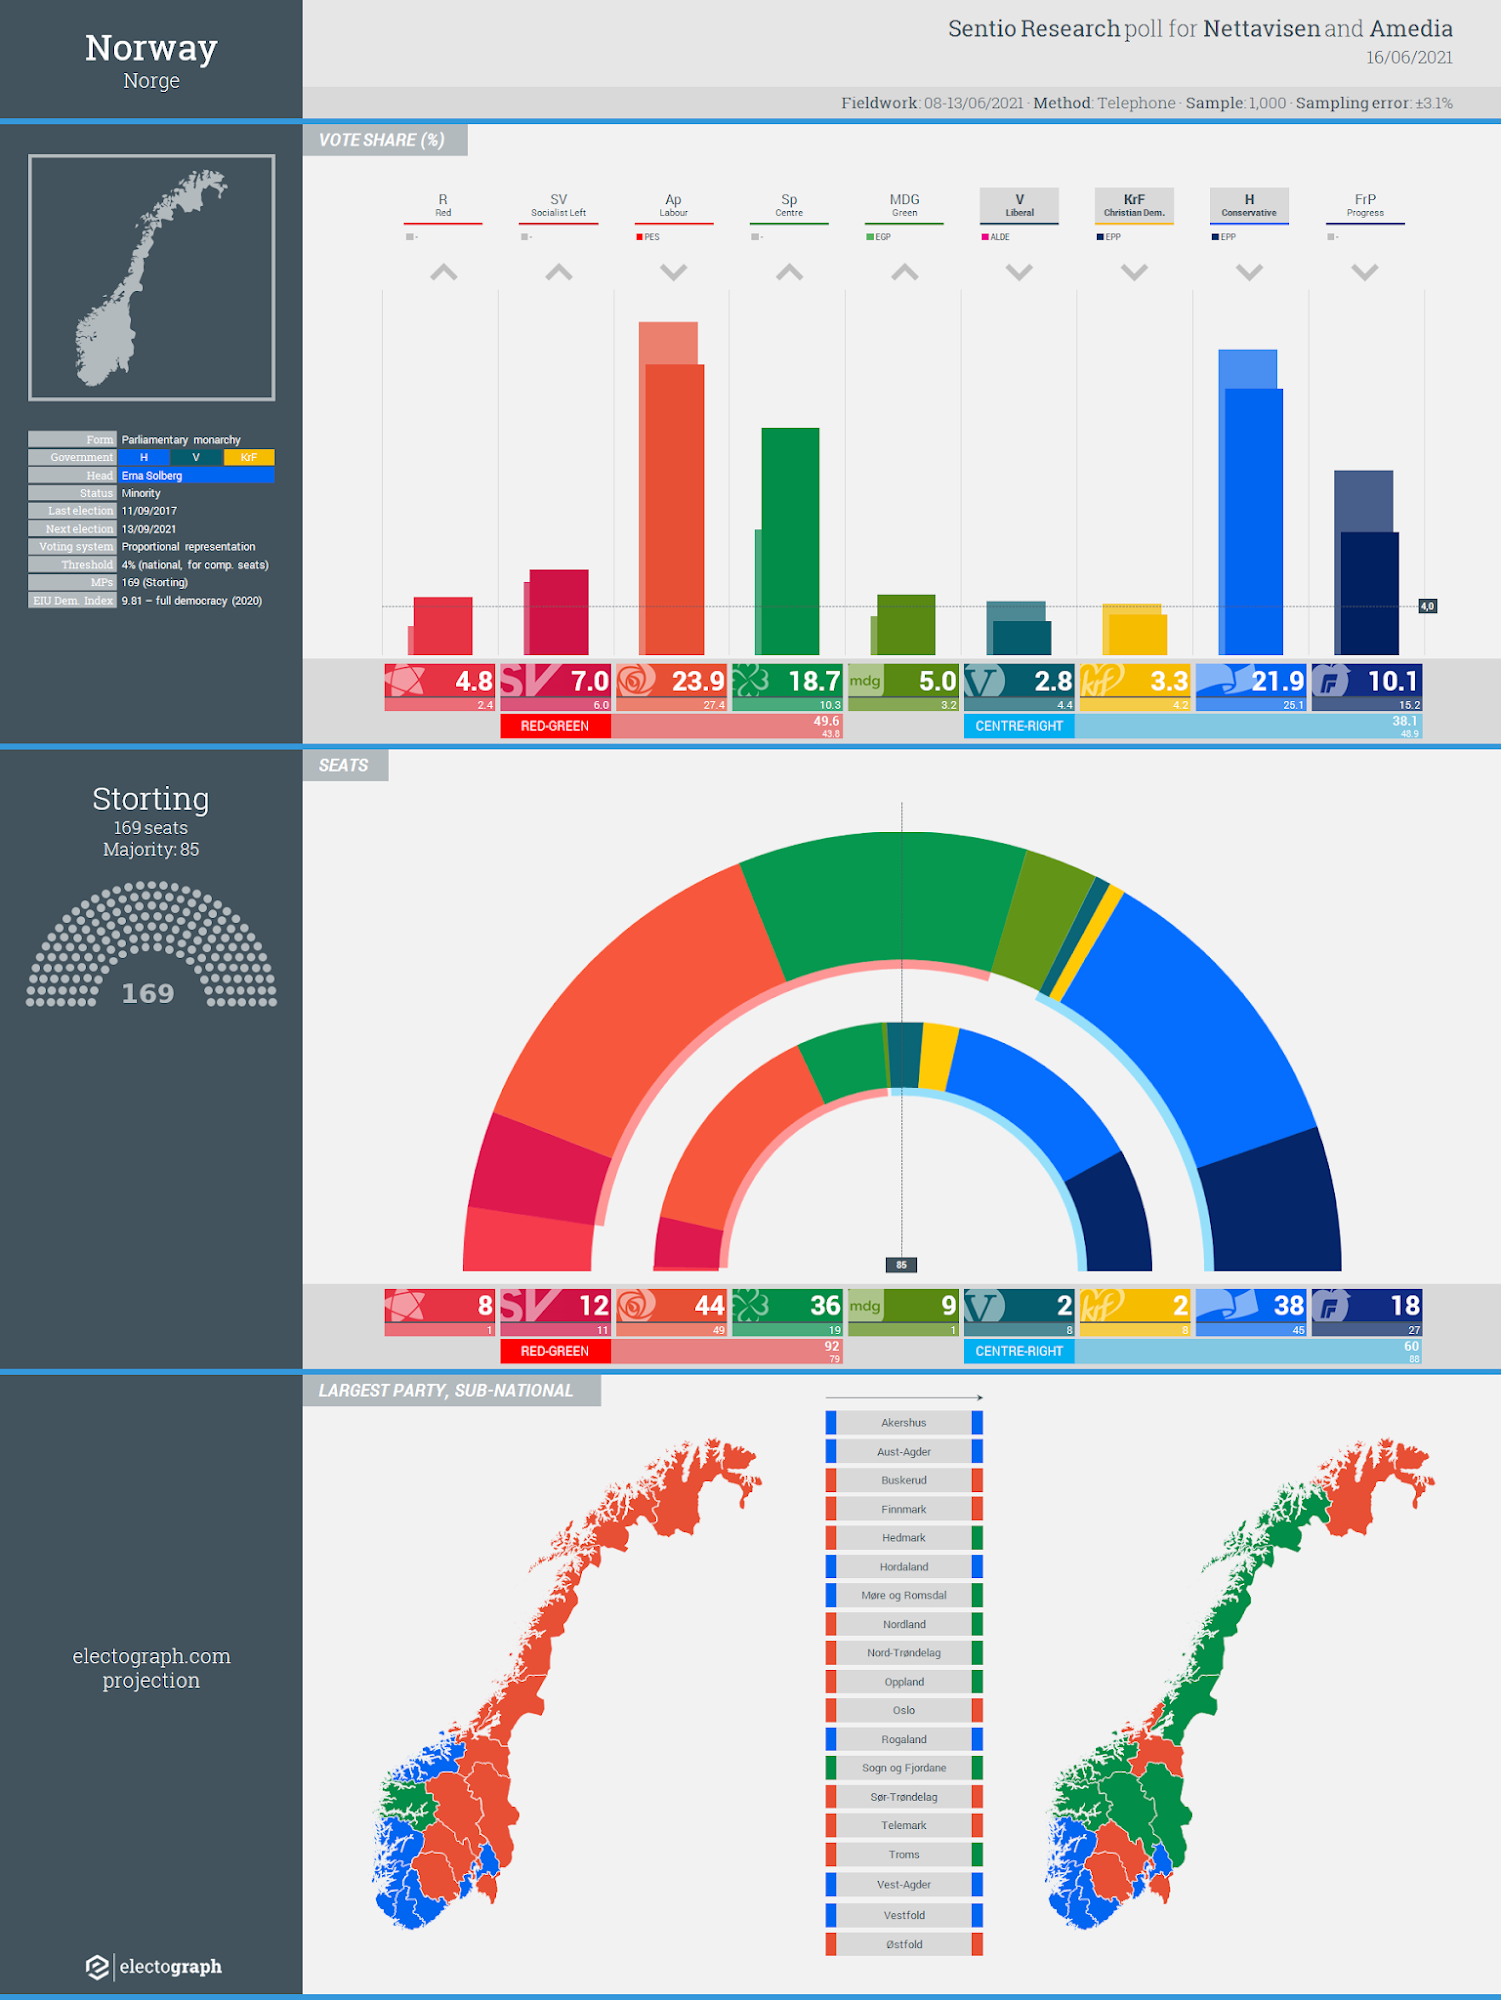 NORWAY: Sentio Research poll chart for Nettavisen and Amedia, 16 June 2021